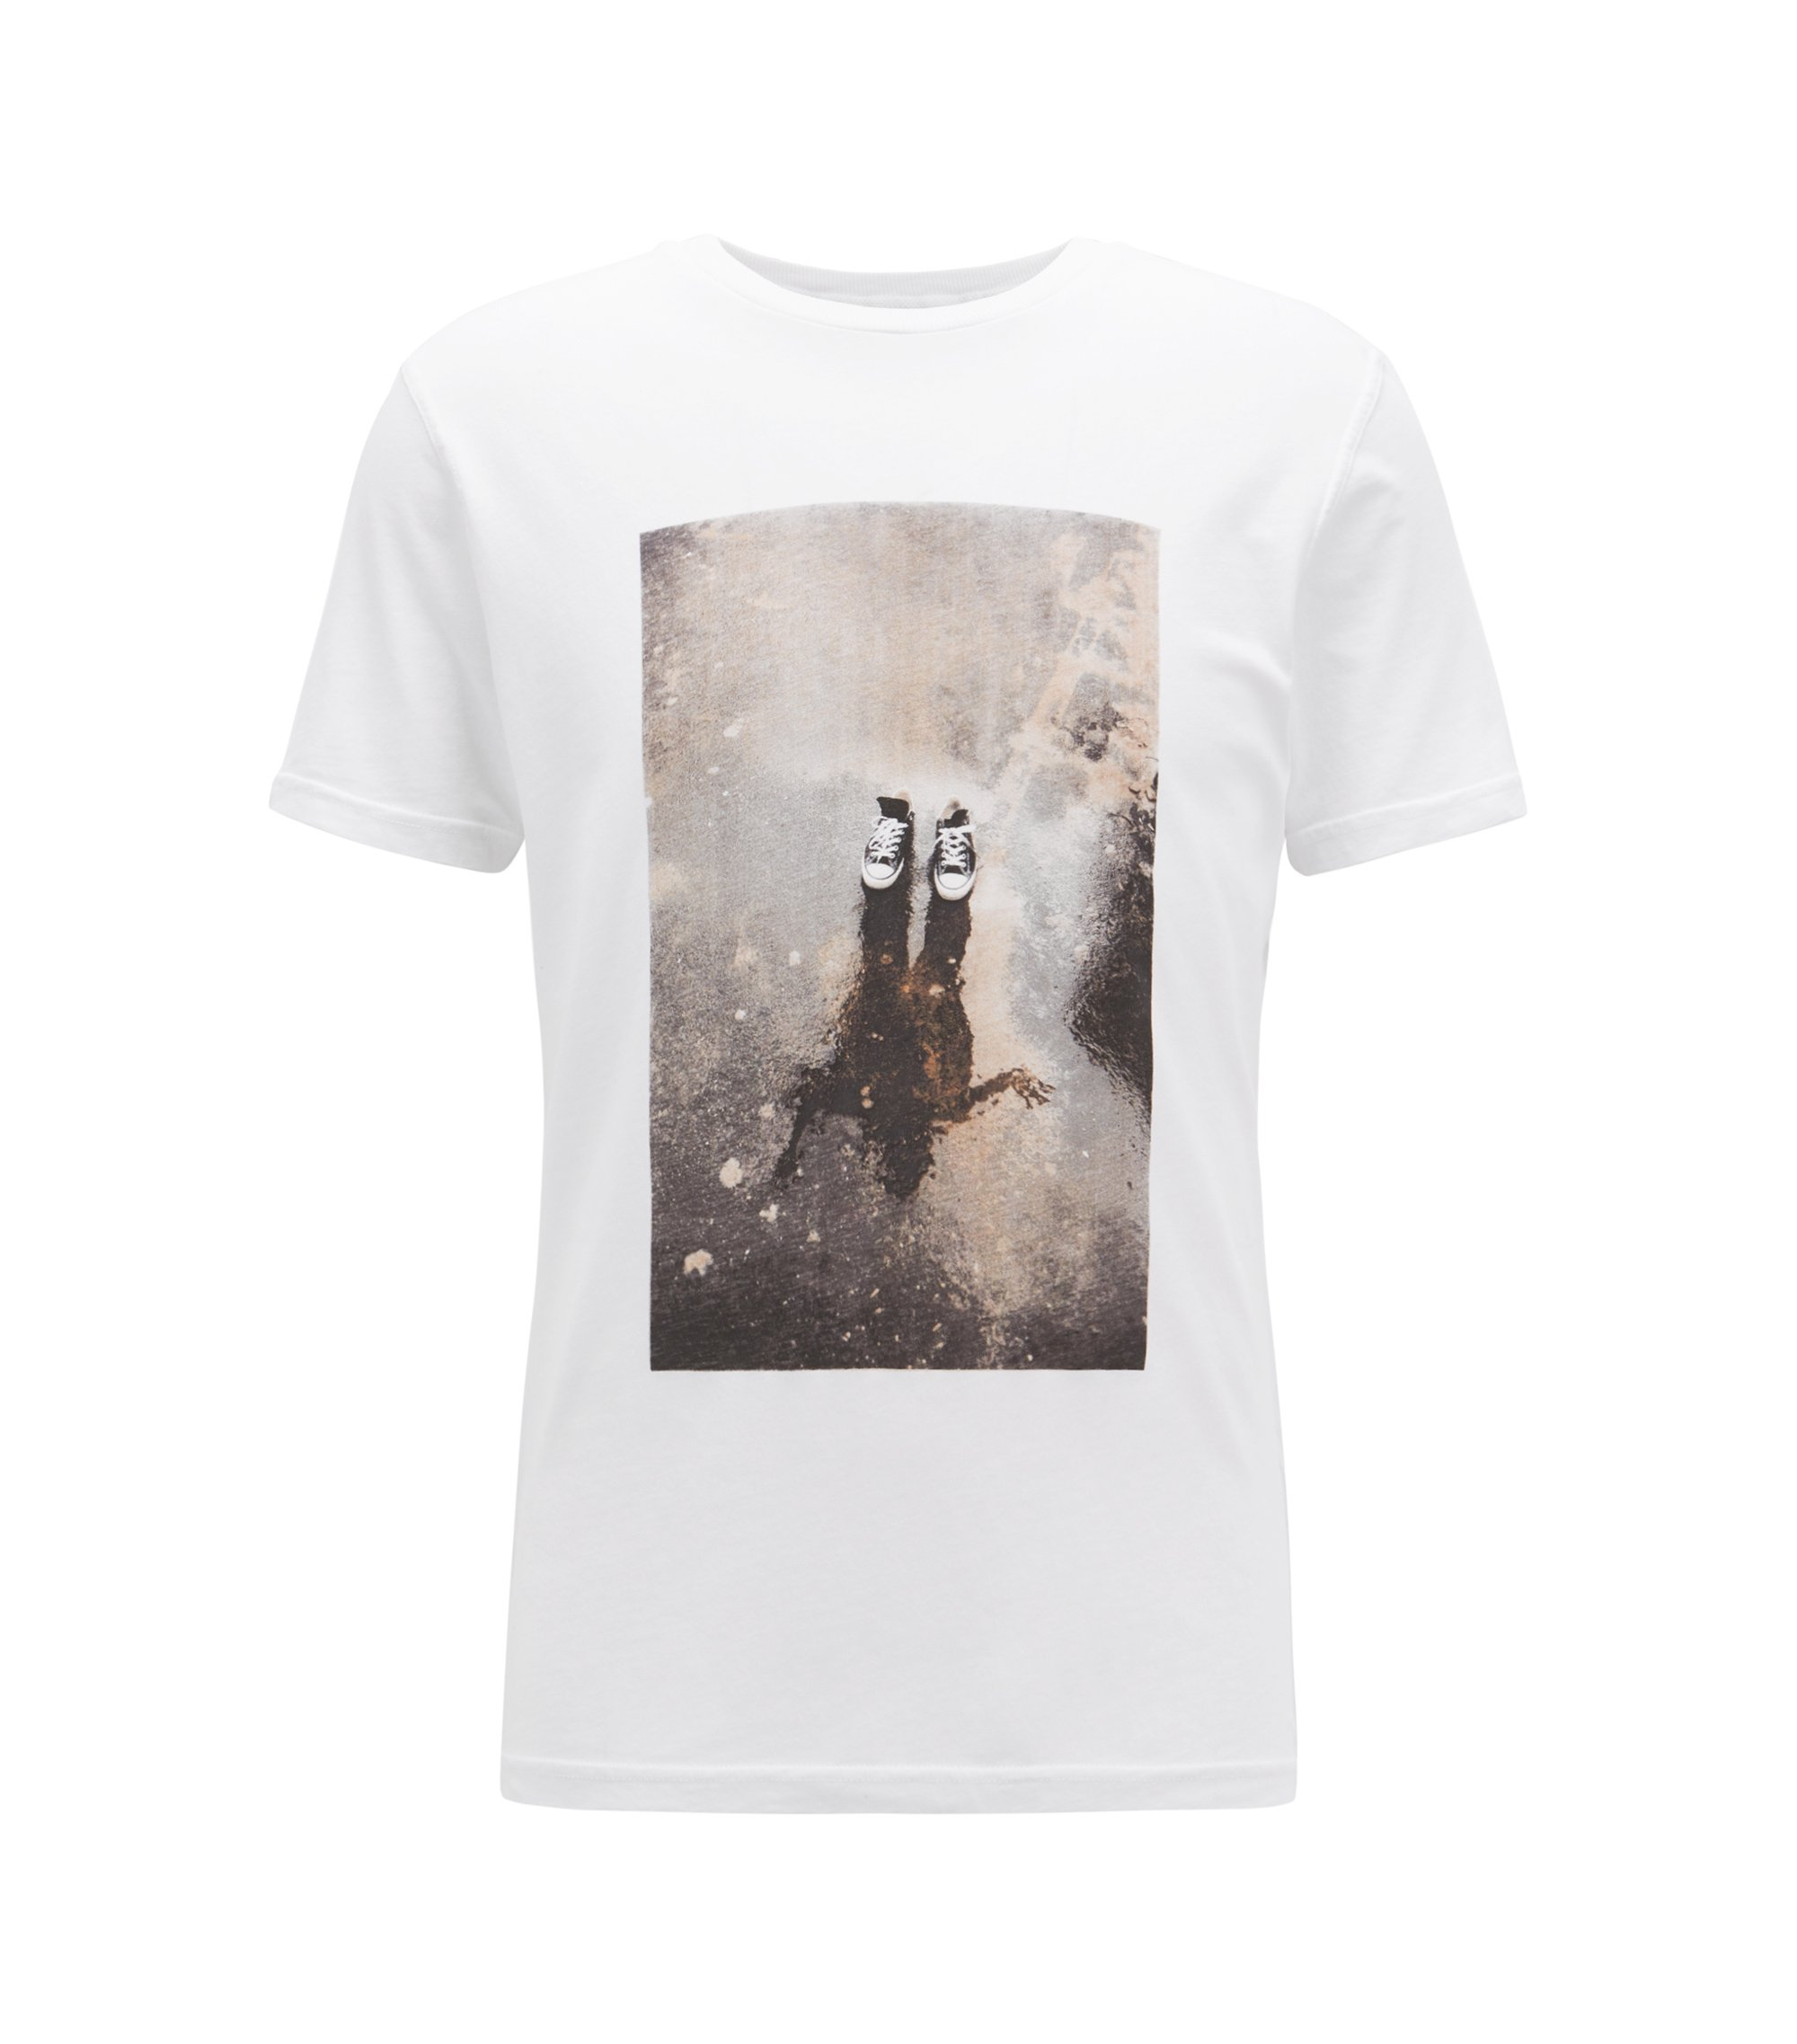 Relaxed-fit graphic T-shirt in recot²® cotton jersey, White